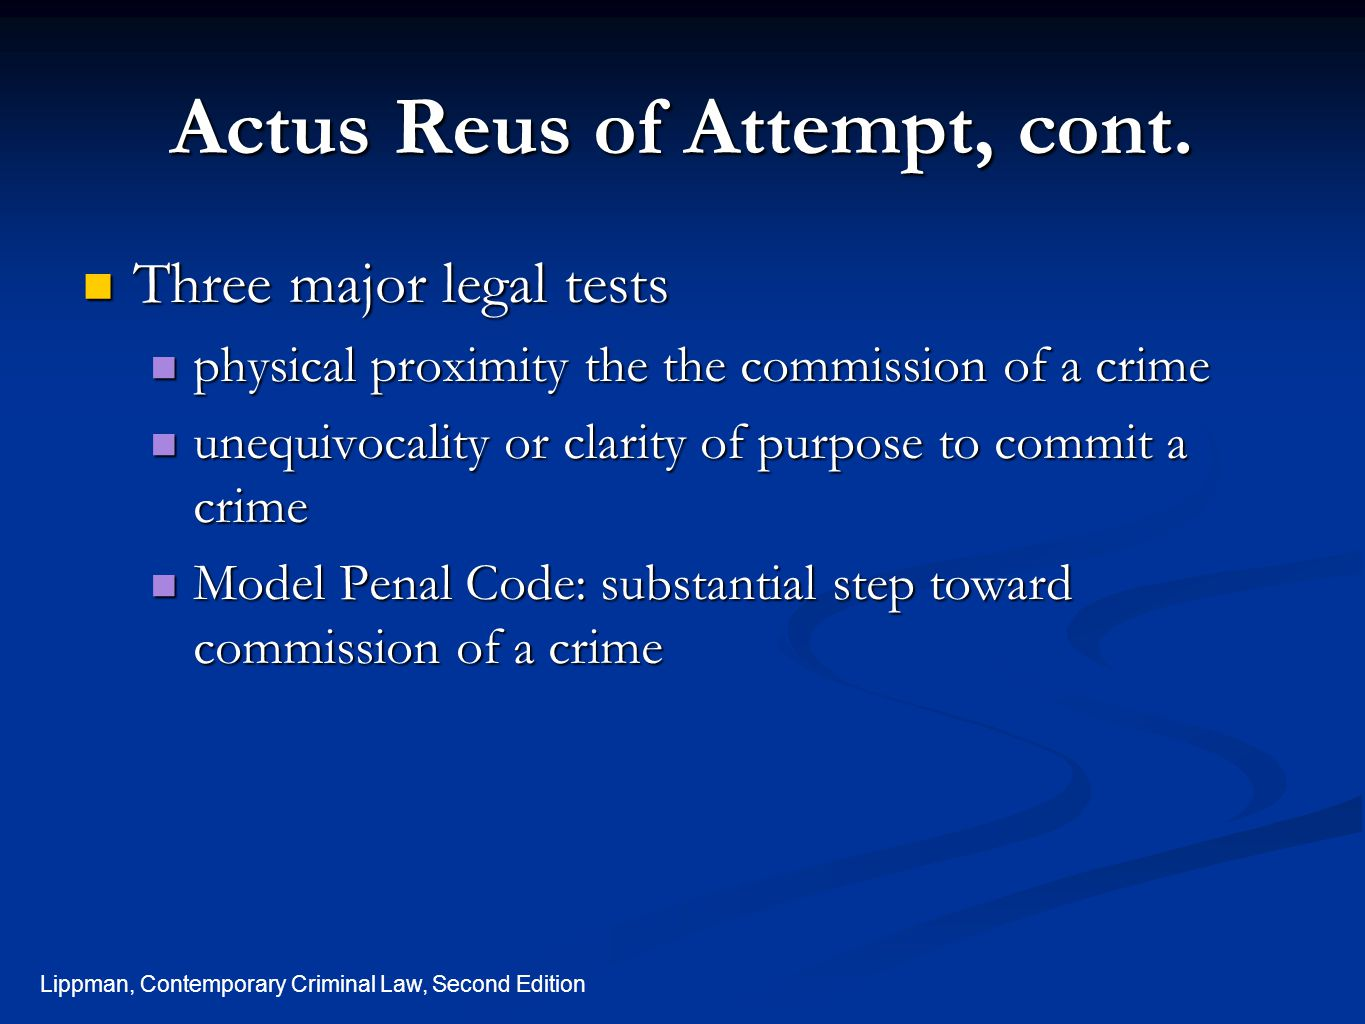 Actus Reus of Attempt, cont.